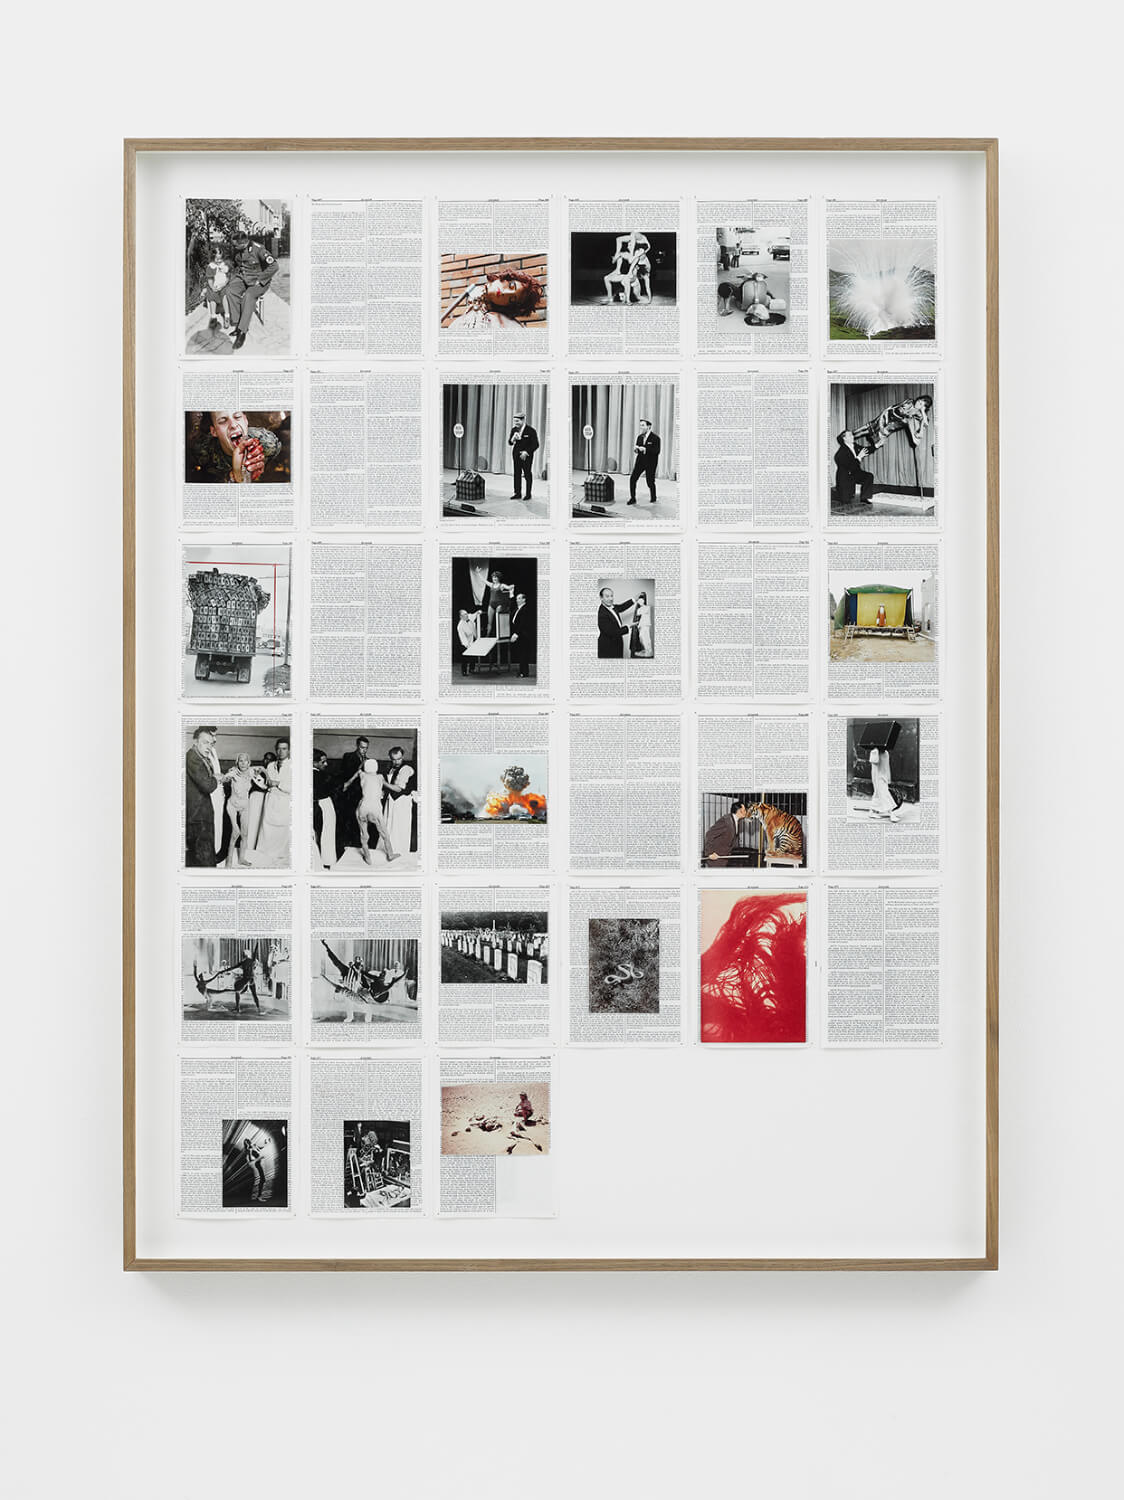 Jeremiah, Divine Violence, 2013, King James Bible, Hahnemühle print, brass pins, 1085mm x 1415mm, Image courtesy of Lisson Gallery, London